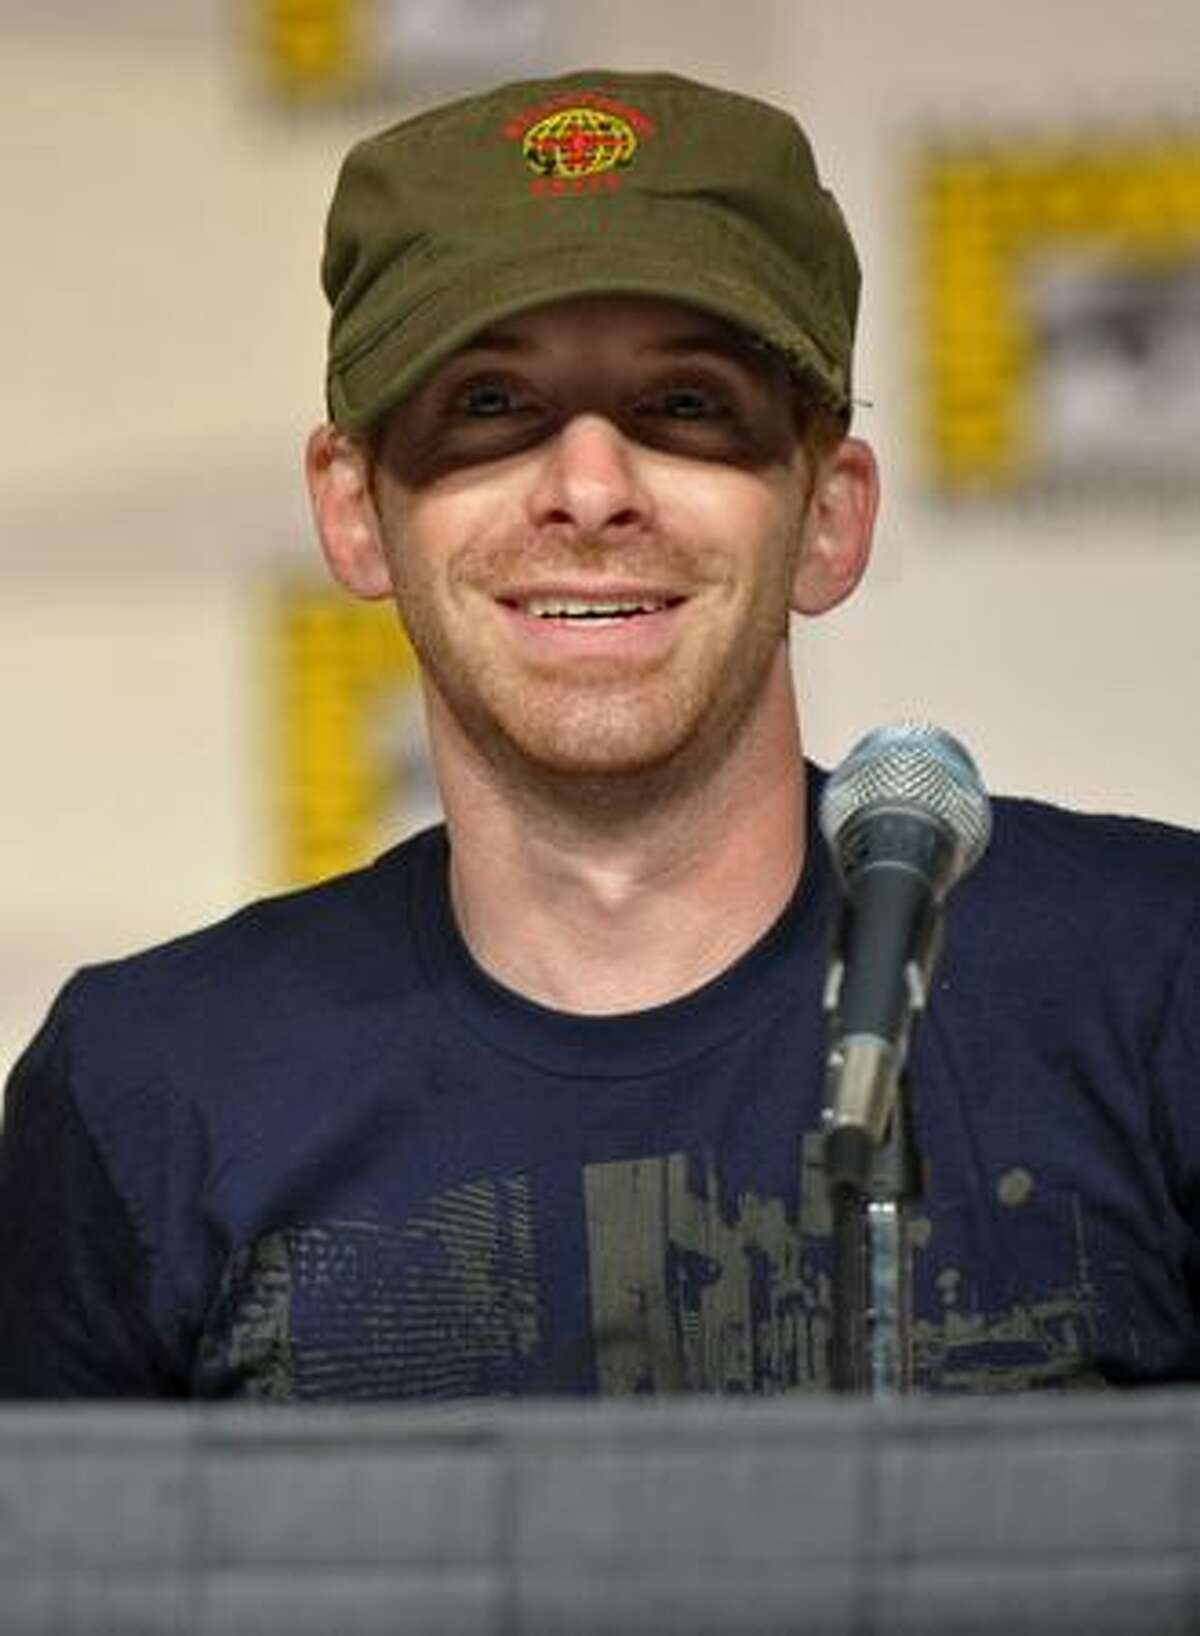 """SAN DIEGO - JULY 25: Actor Seth Green speaks at the """"Family Guy""""panel discussion at Comic-Con 2009 held at San Diego Convention Center on July 25, 2009 in San Diego, California."""